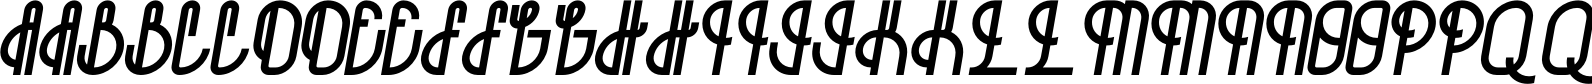 Bohema Regular Italic Alternative